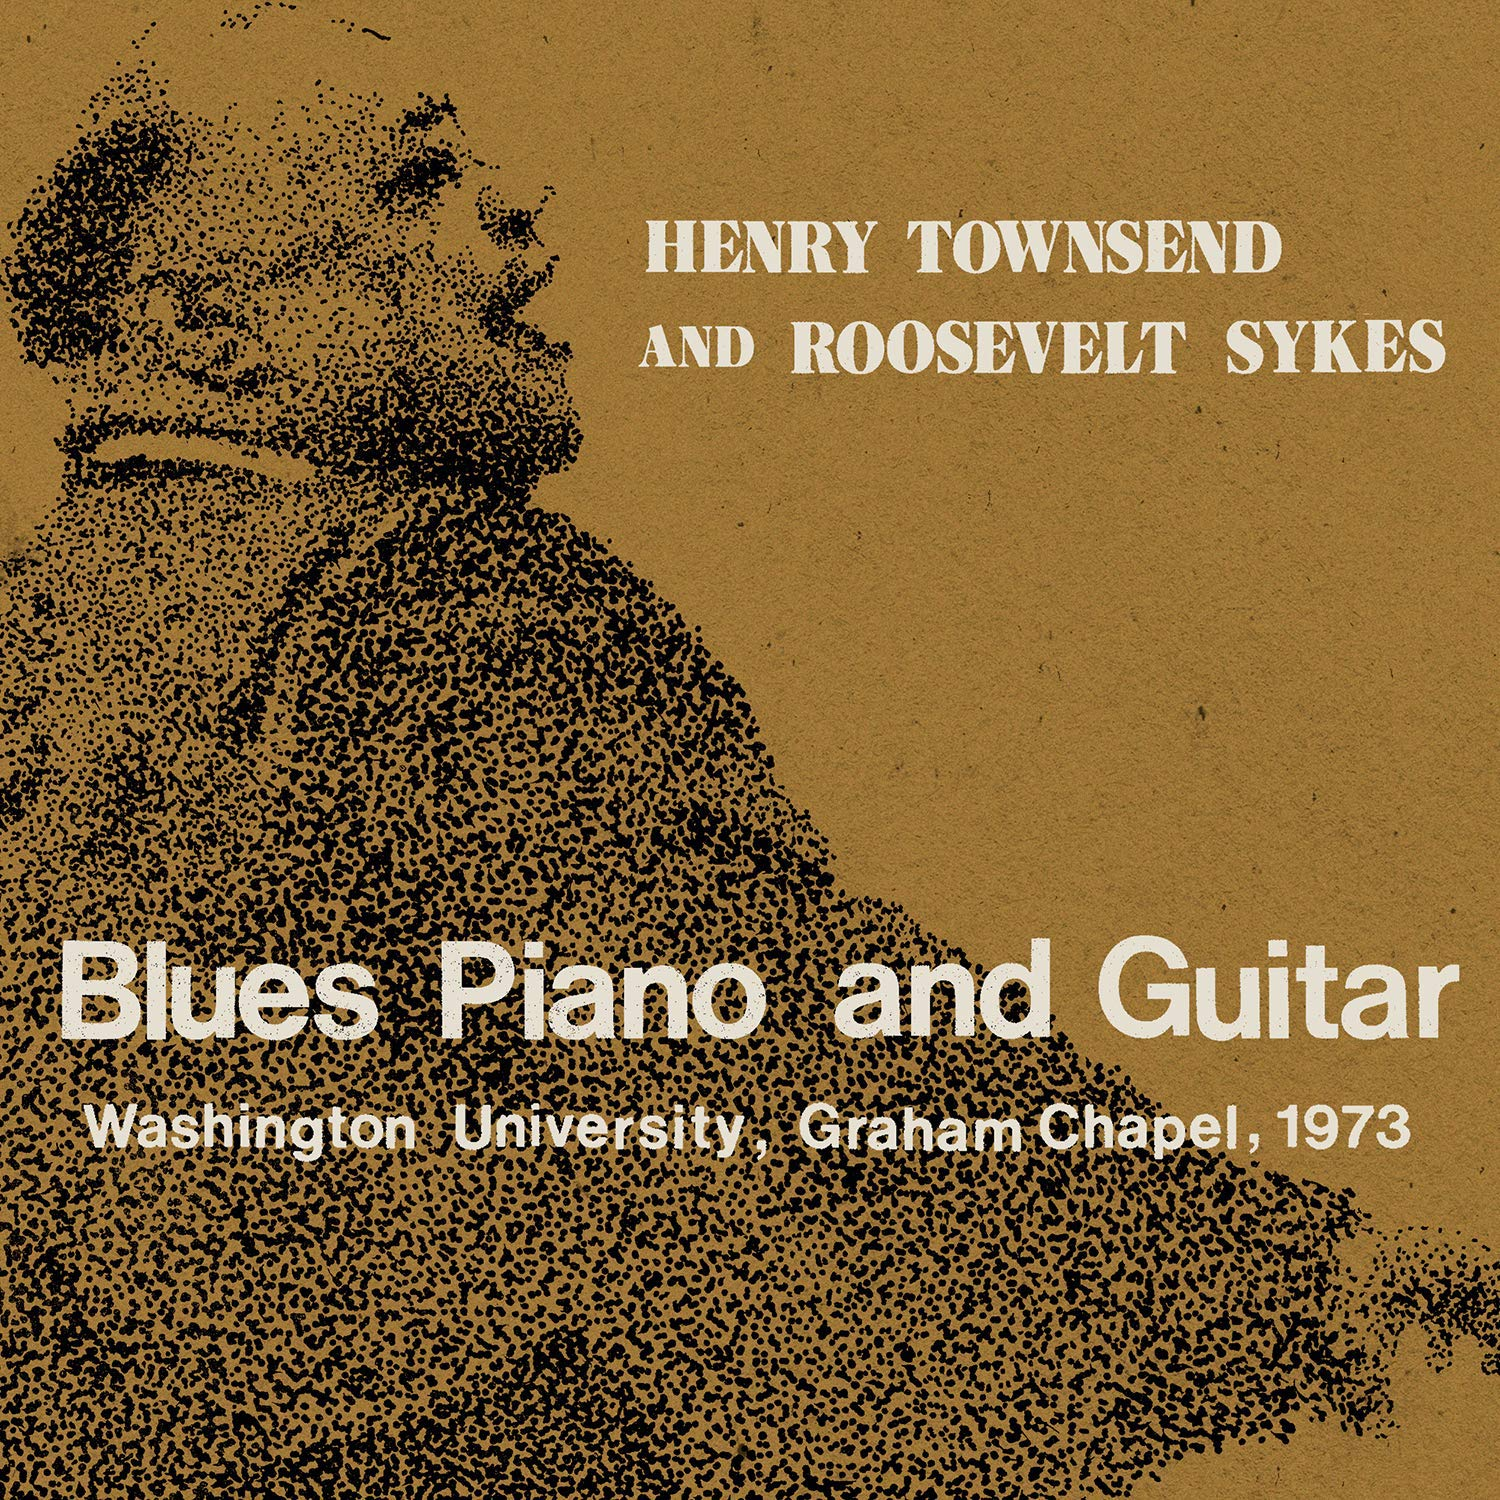 Henry Townsend & Roosevelt Sykes - Blues Piano And Guitar (Live) (2019)